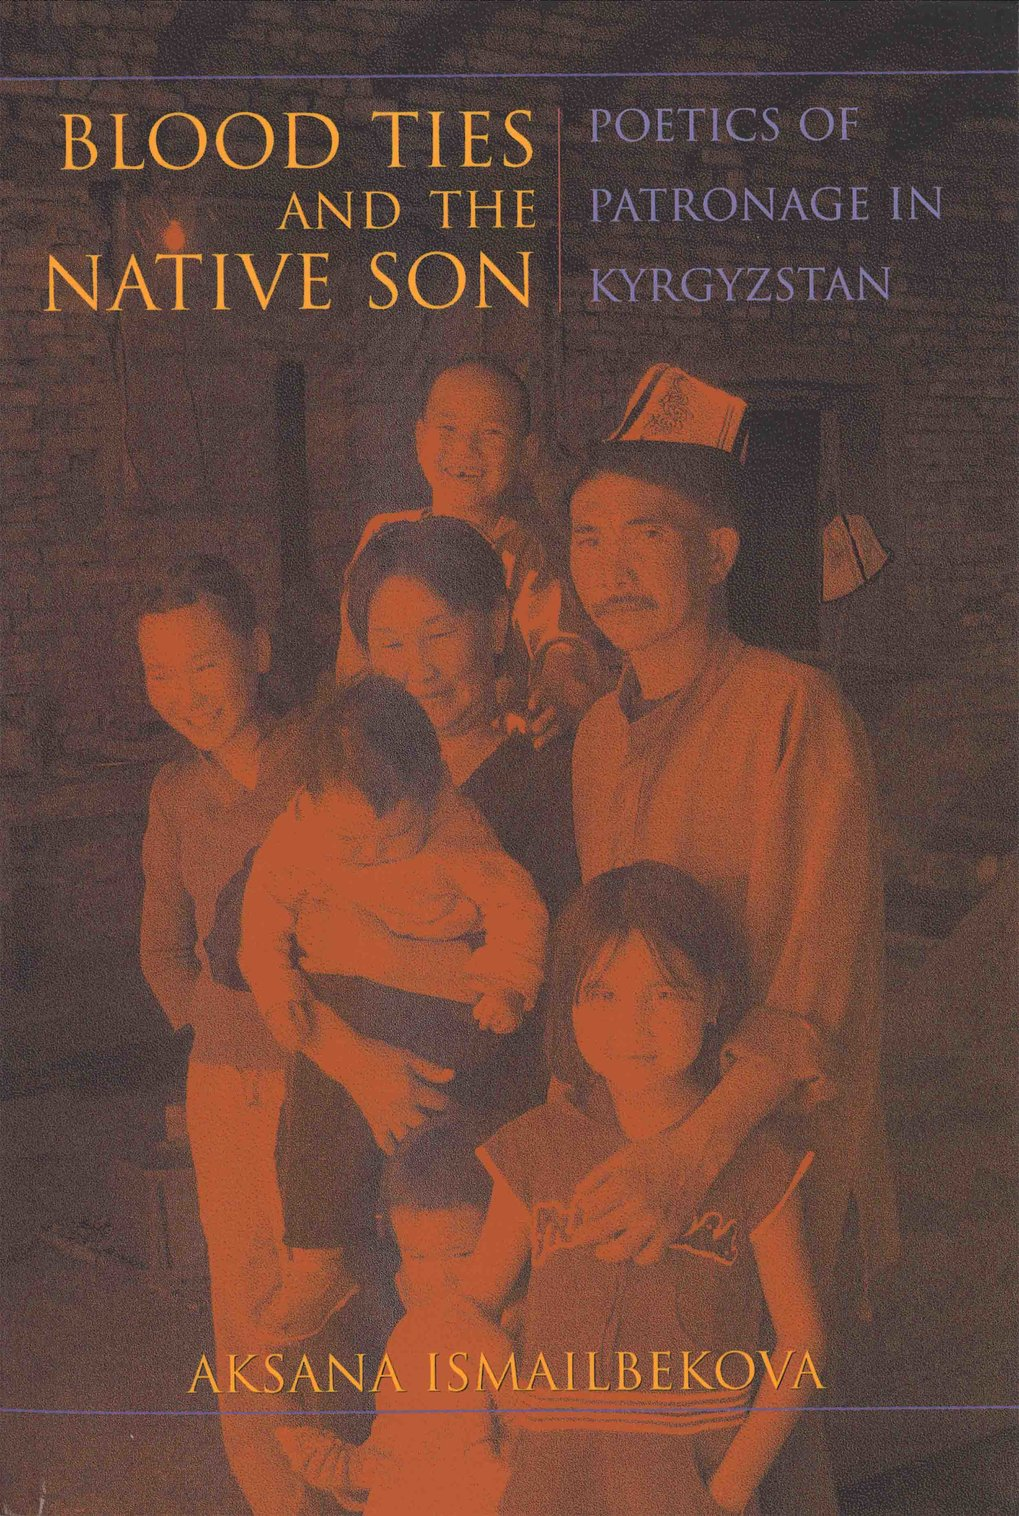 Blood ties and the native son. Poetics of patronage in Kyrgyzstan